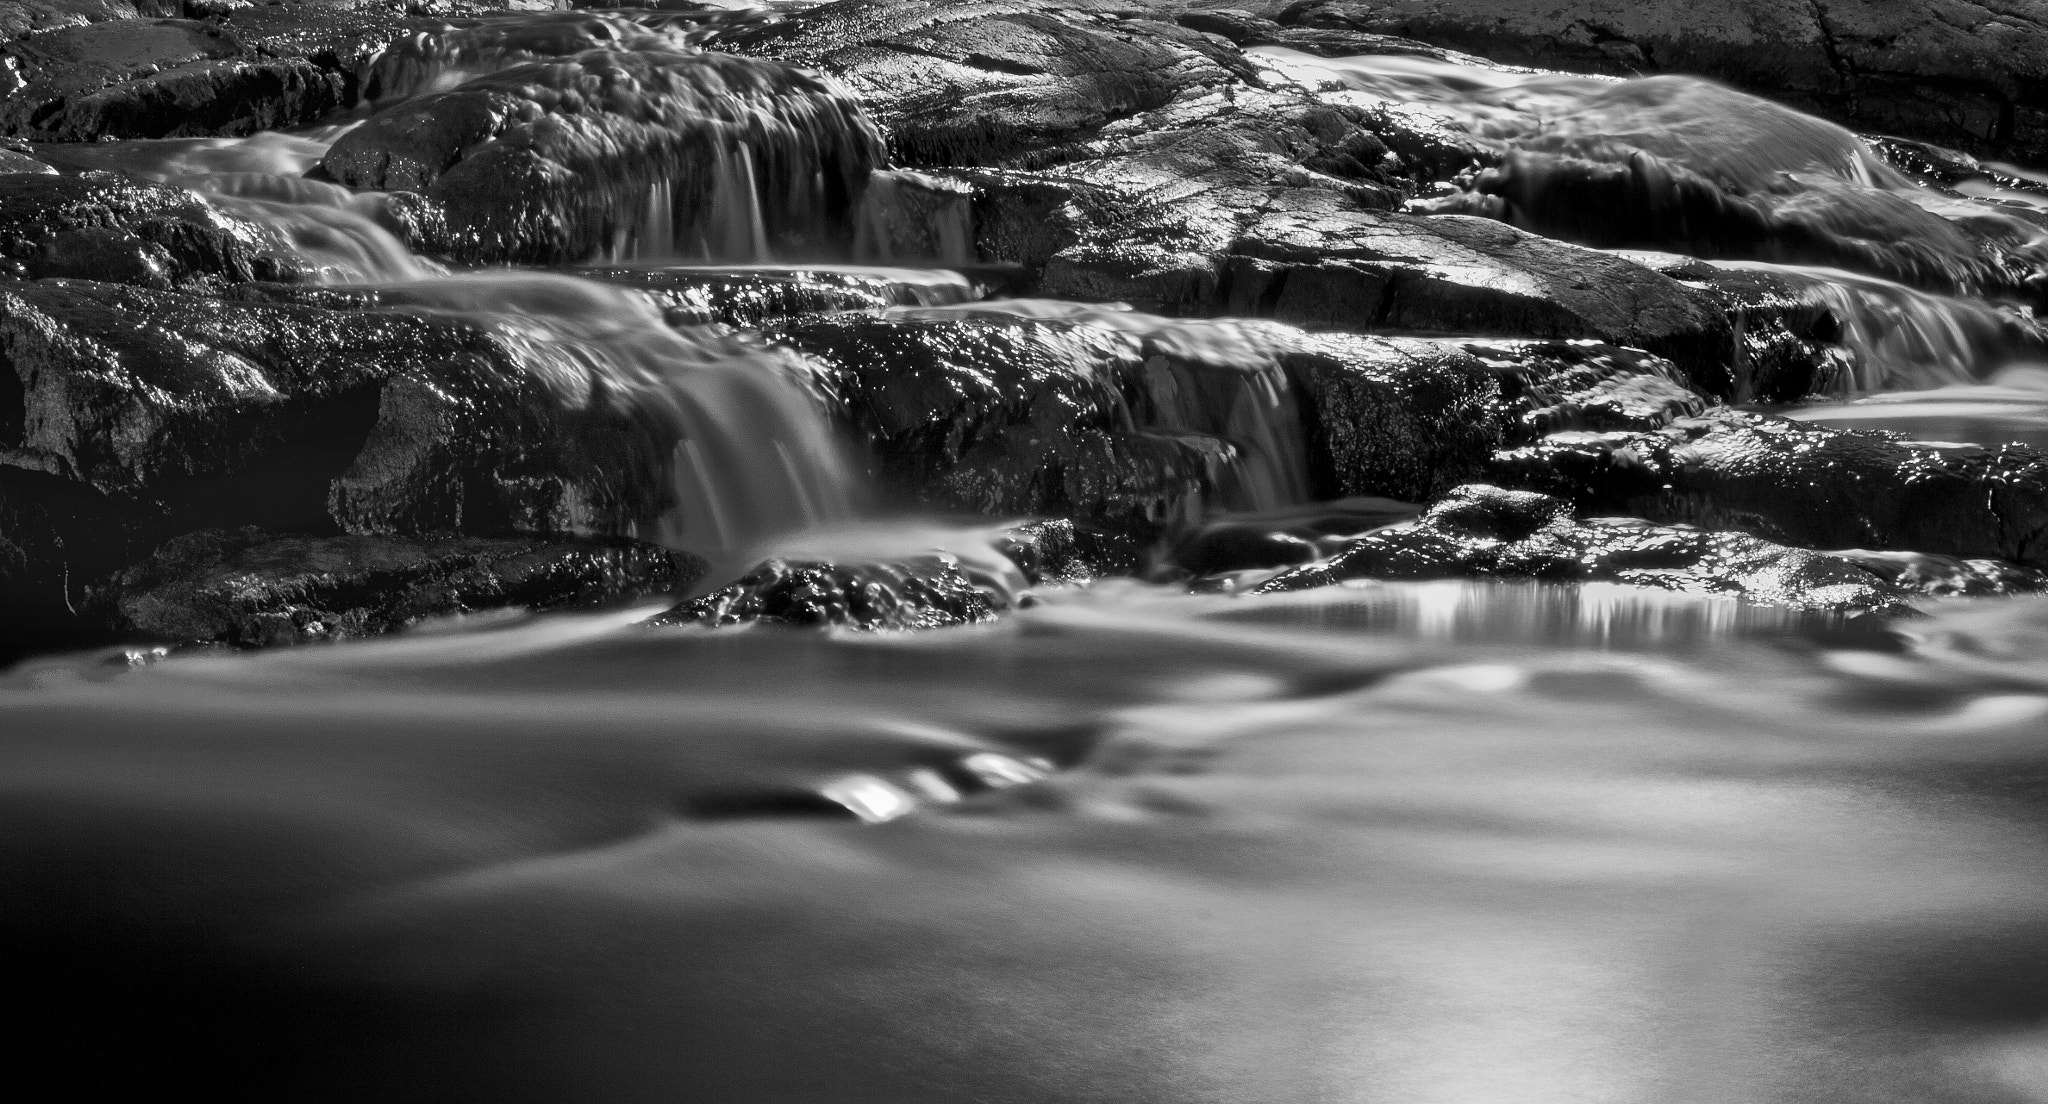 Photograph Flow V by Jari Knuutila on 500px